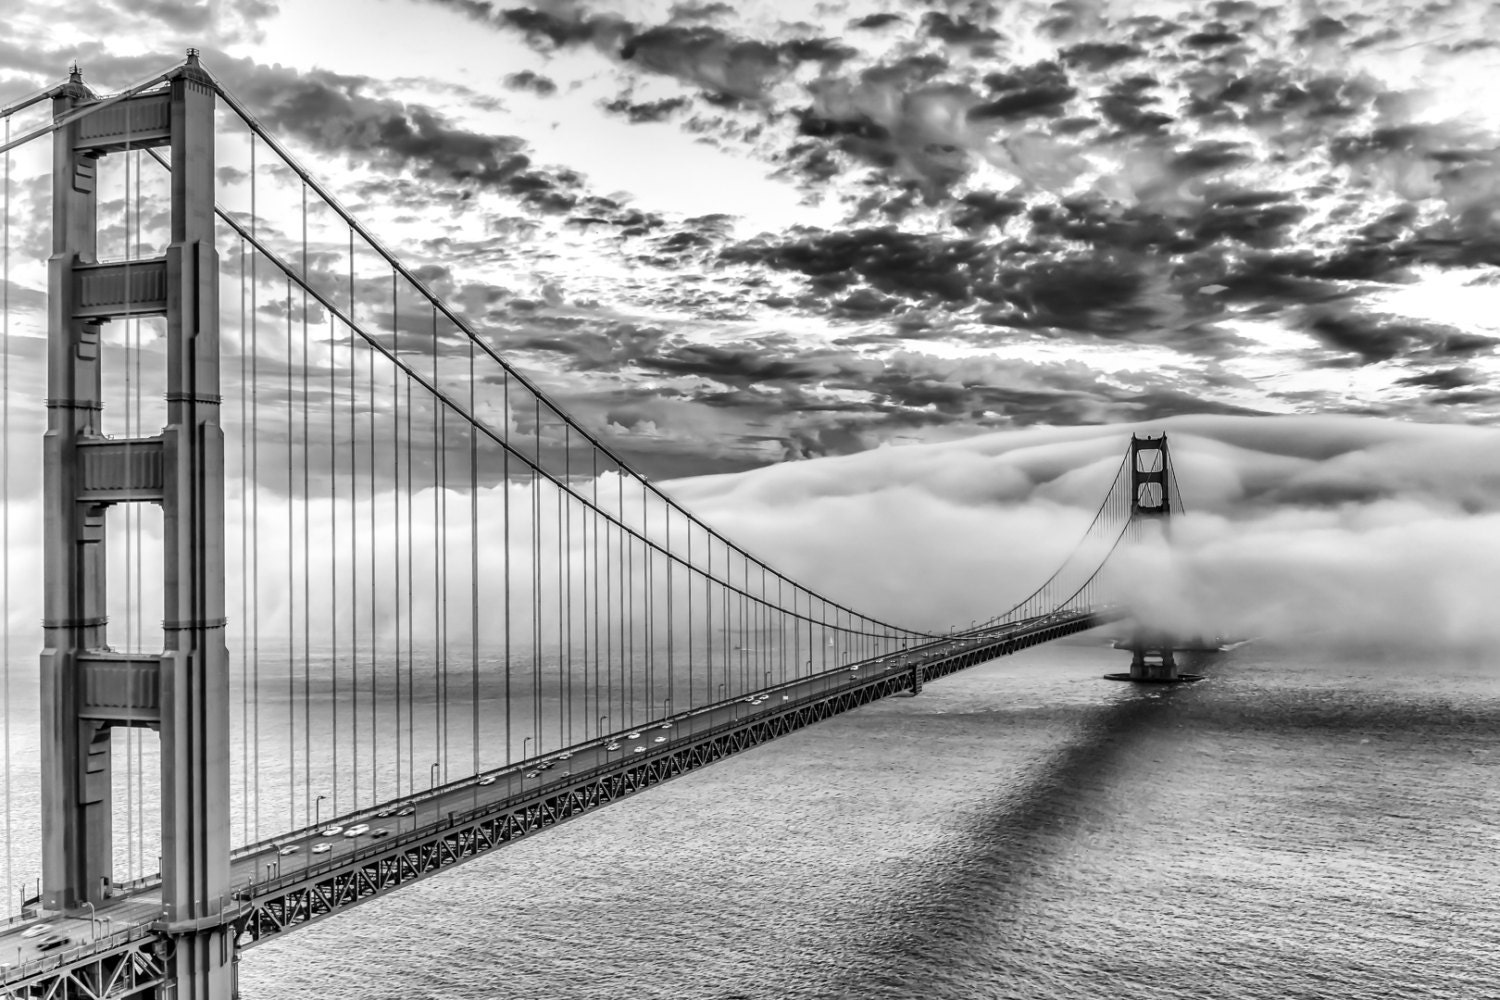 Golden Gate Bridge Illustration Black And White 61590 Movieweb Diagram Of The